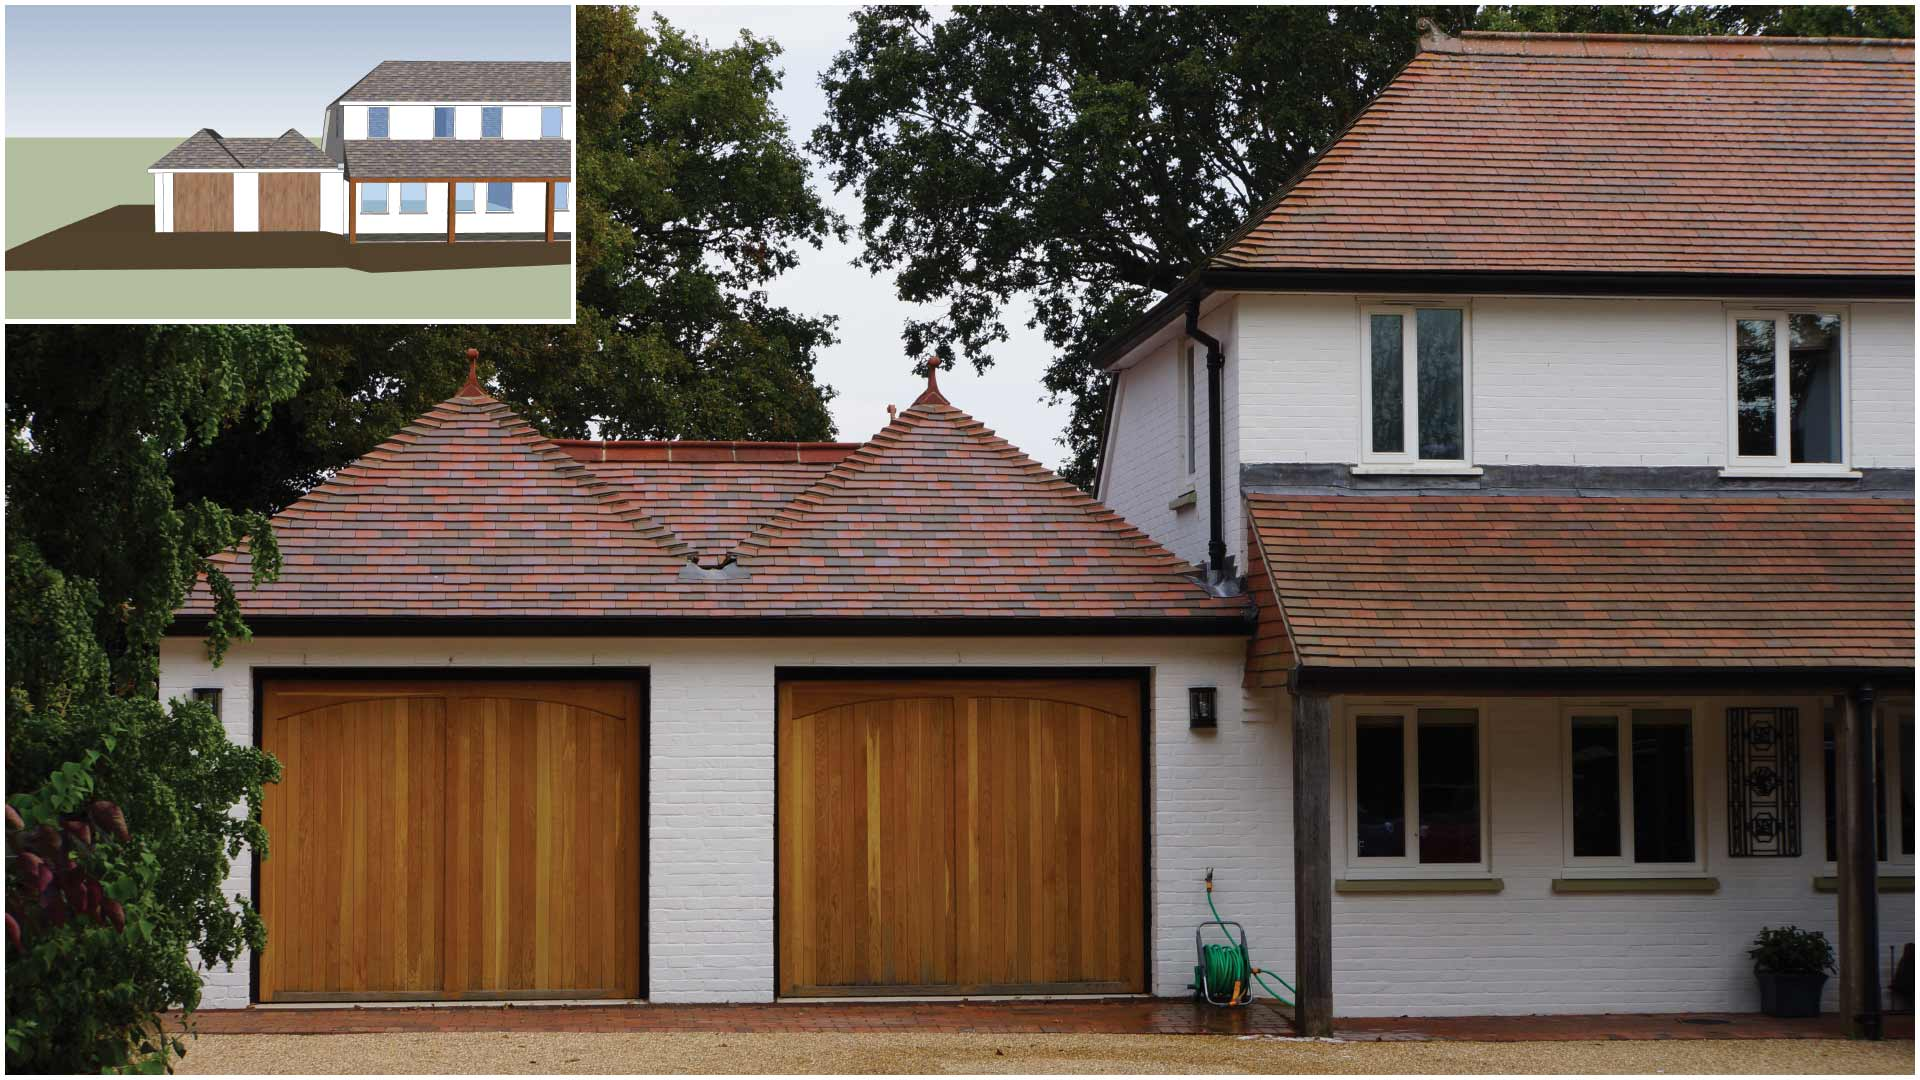 Secret valley double hipped roof extension design by pb properties